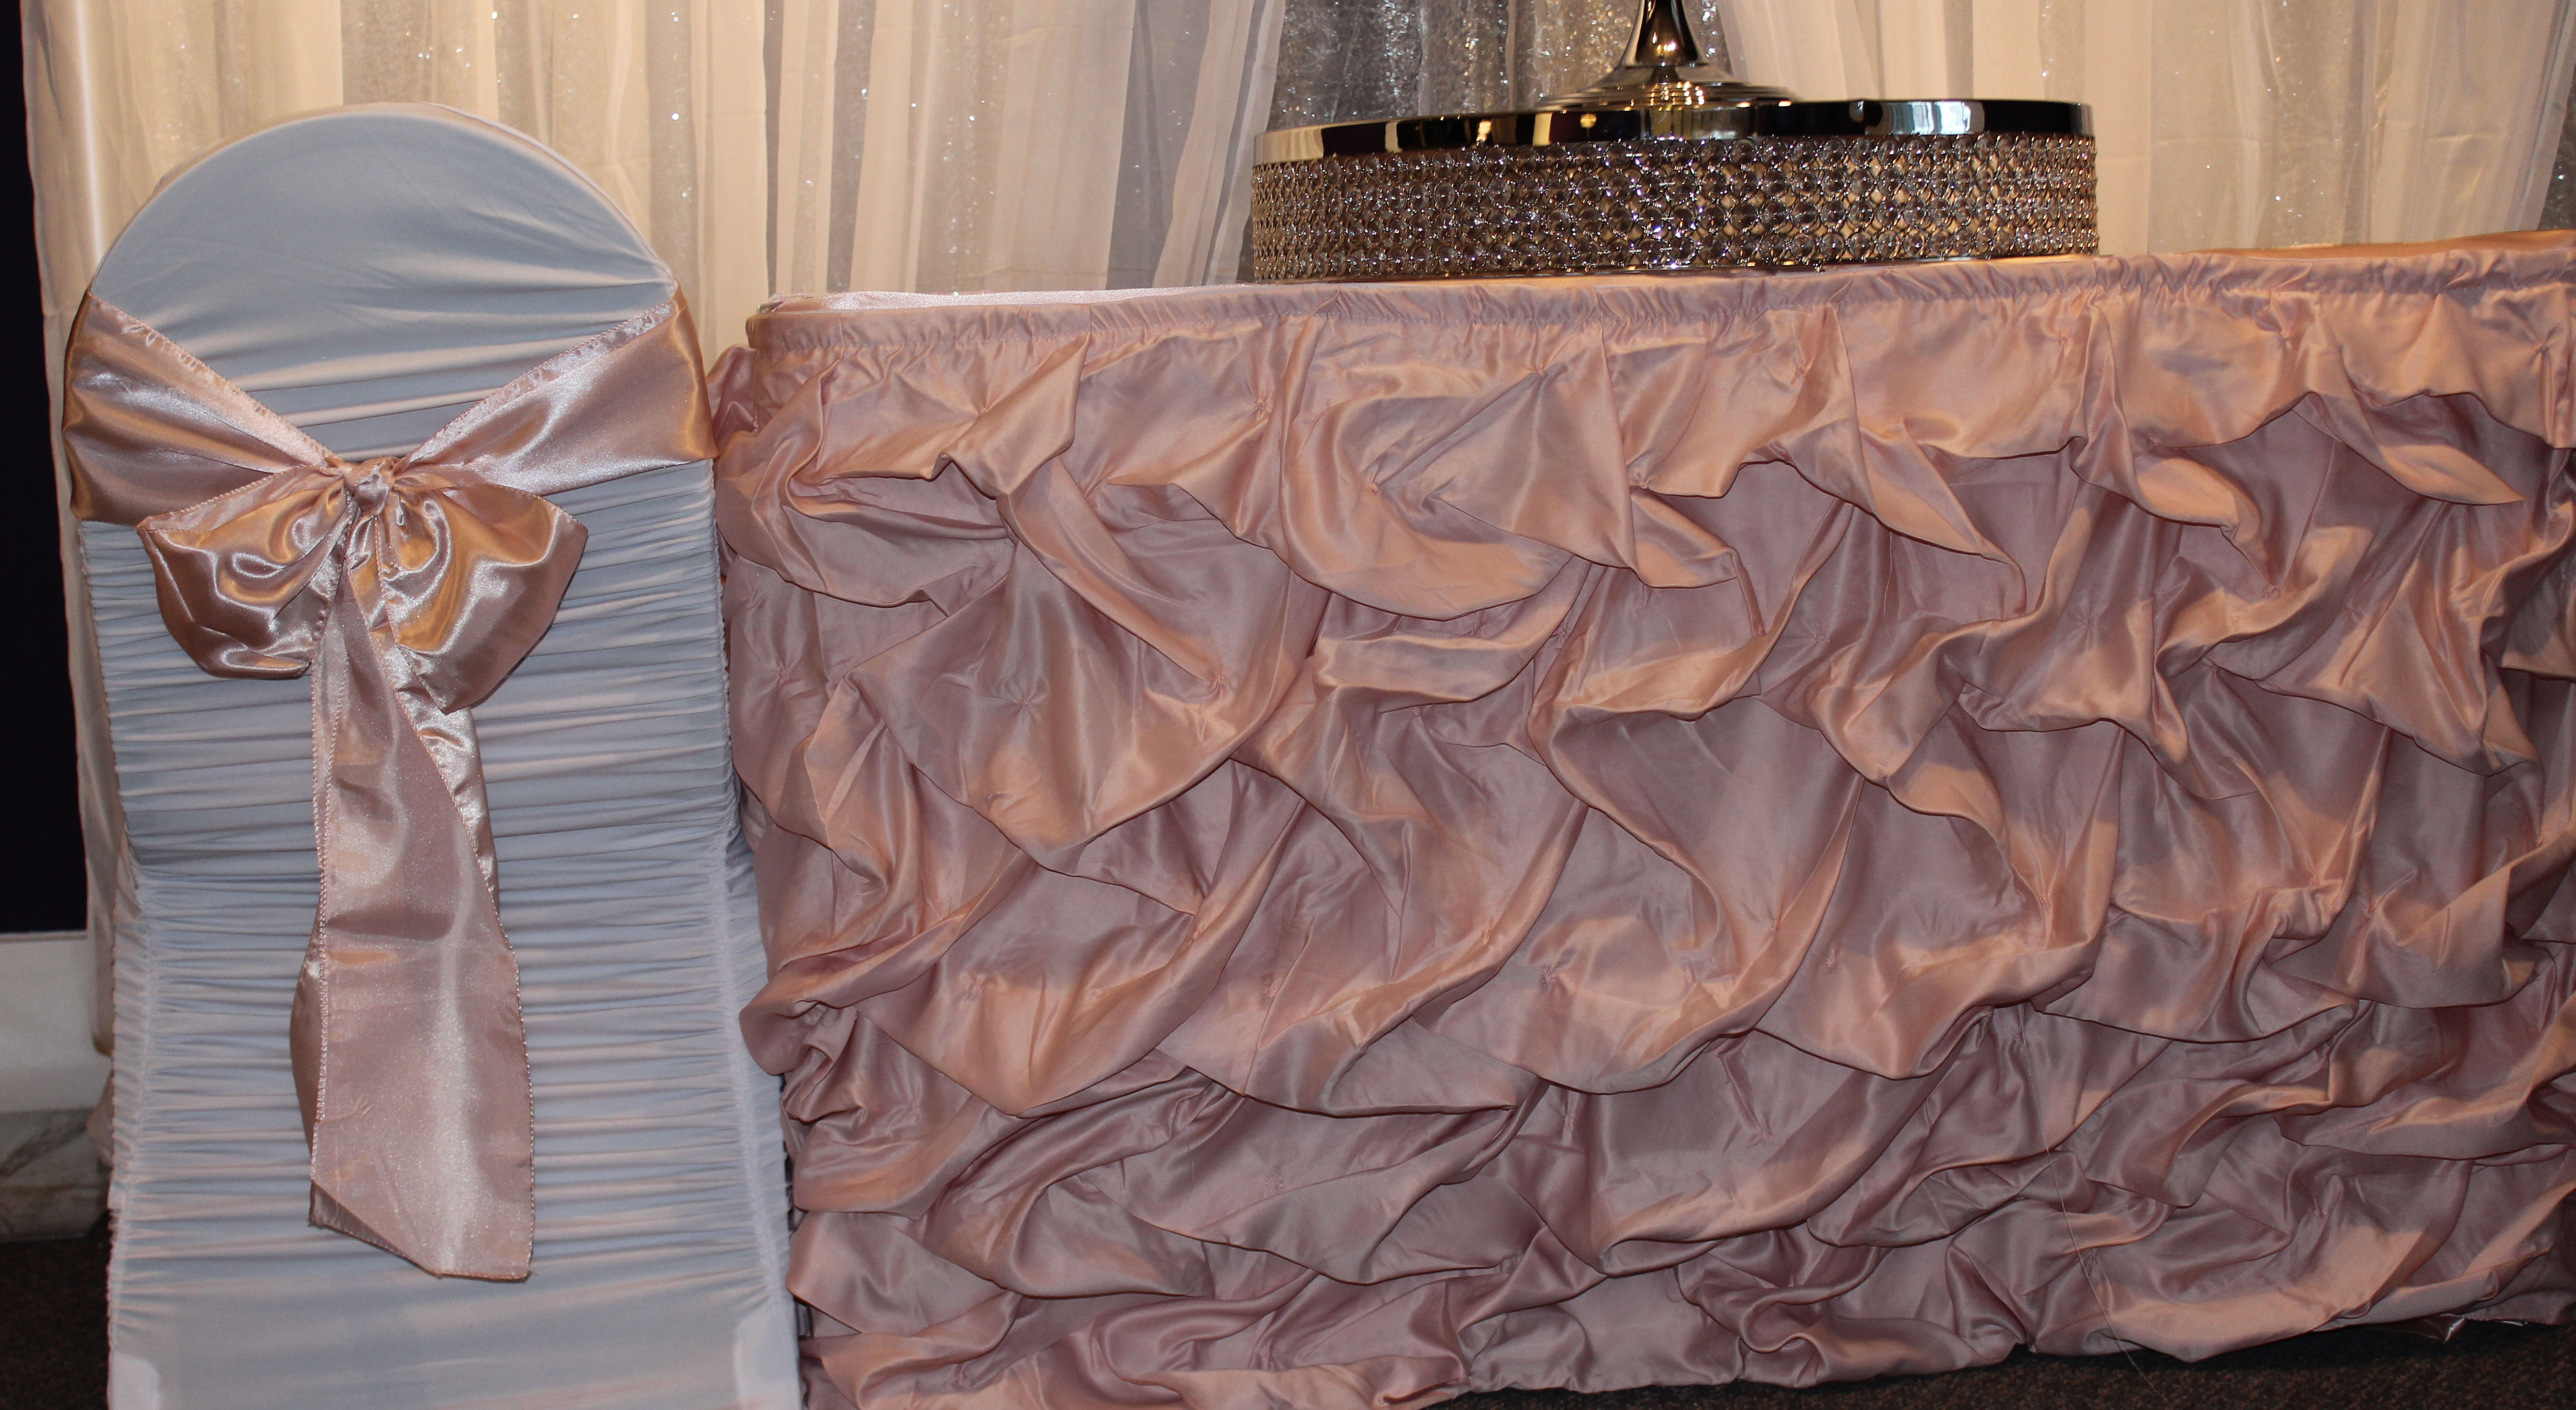 Backdrops Amp Headtable Exquisite Events And Wedding Decor